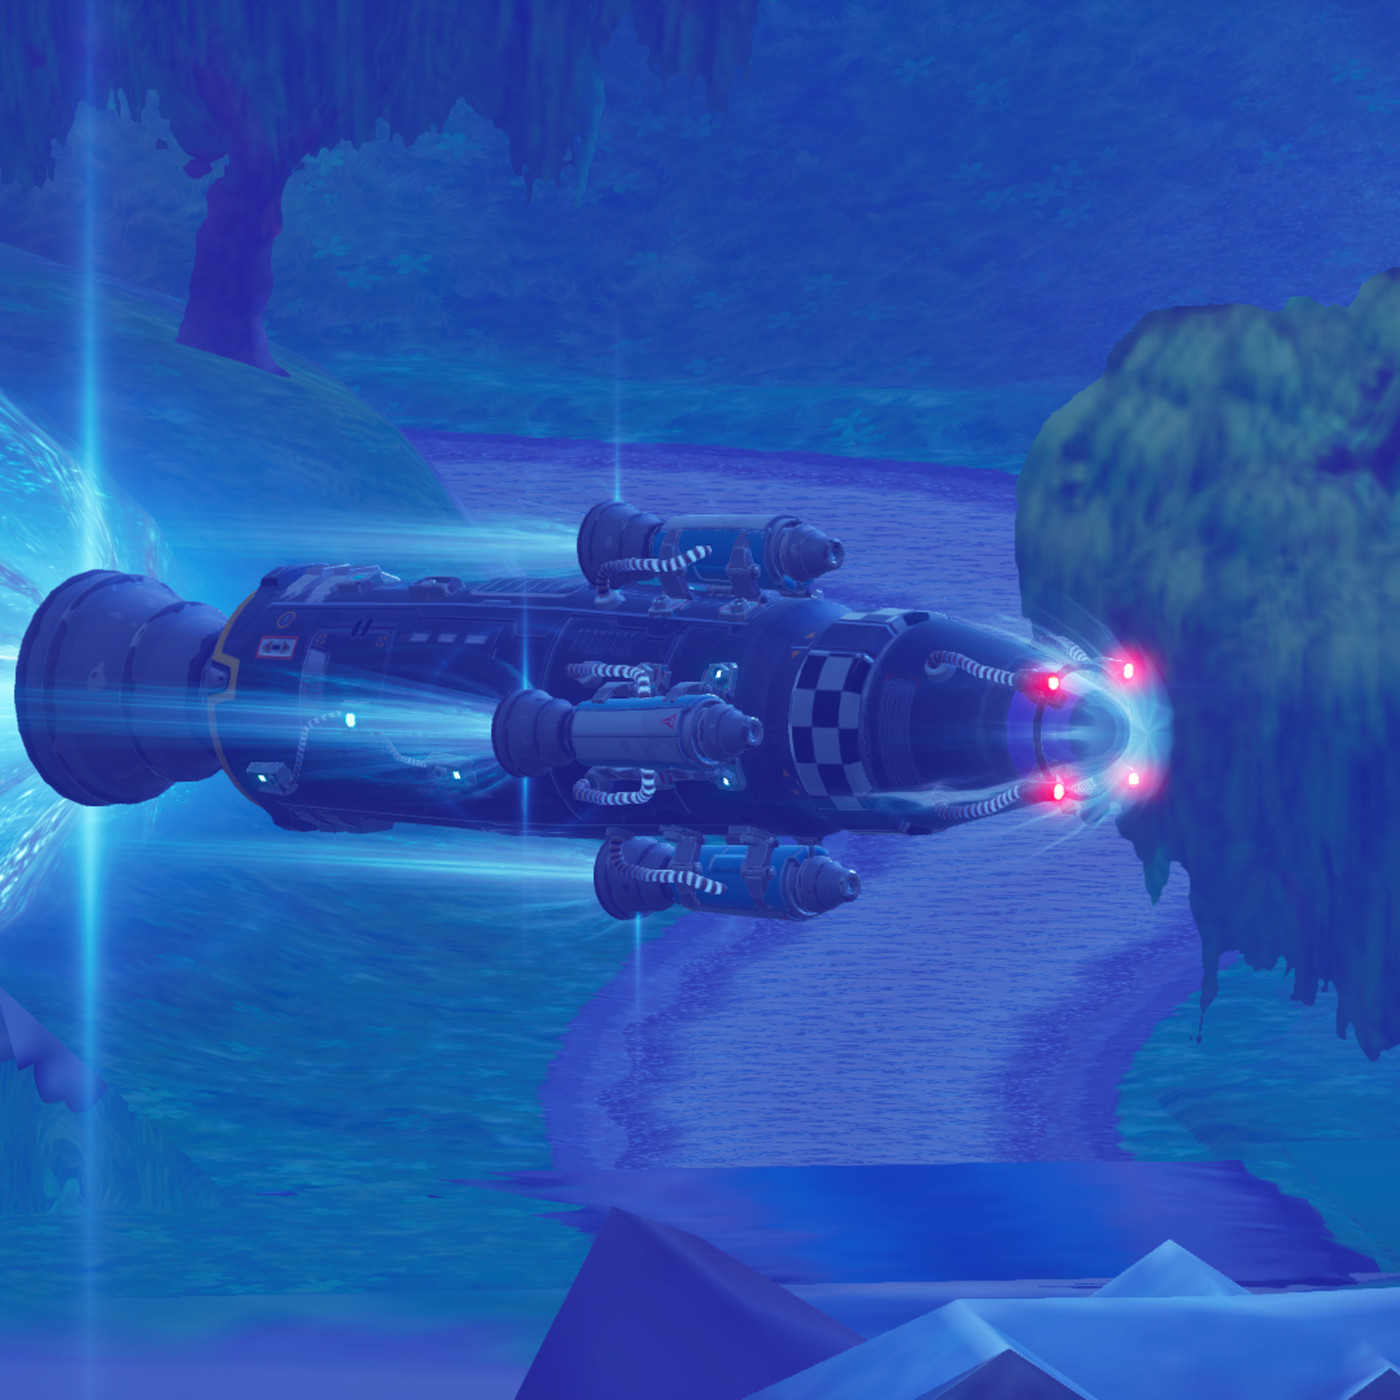 Watch Fortnites Rocket Launch Gameplay Complete With